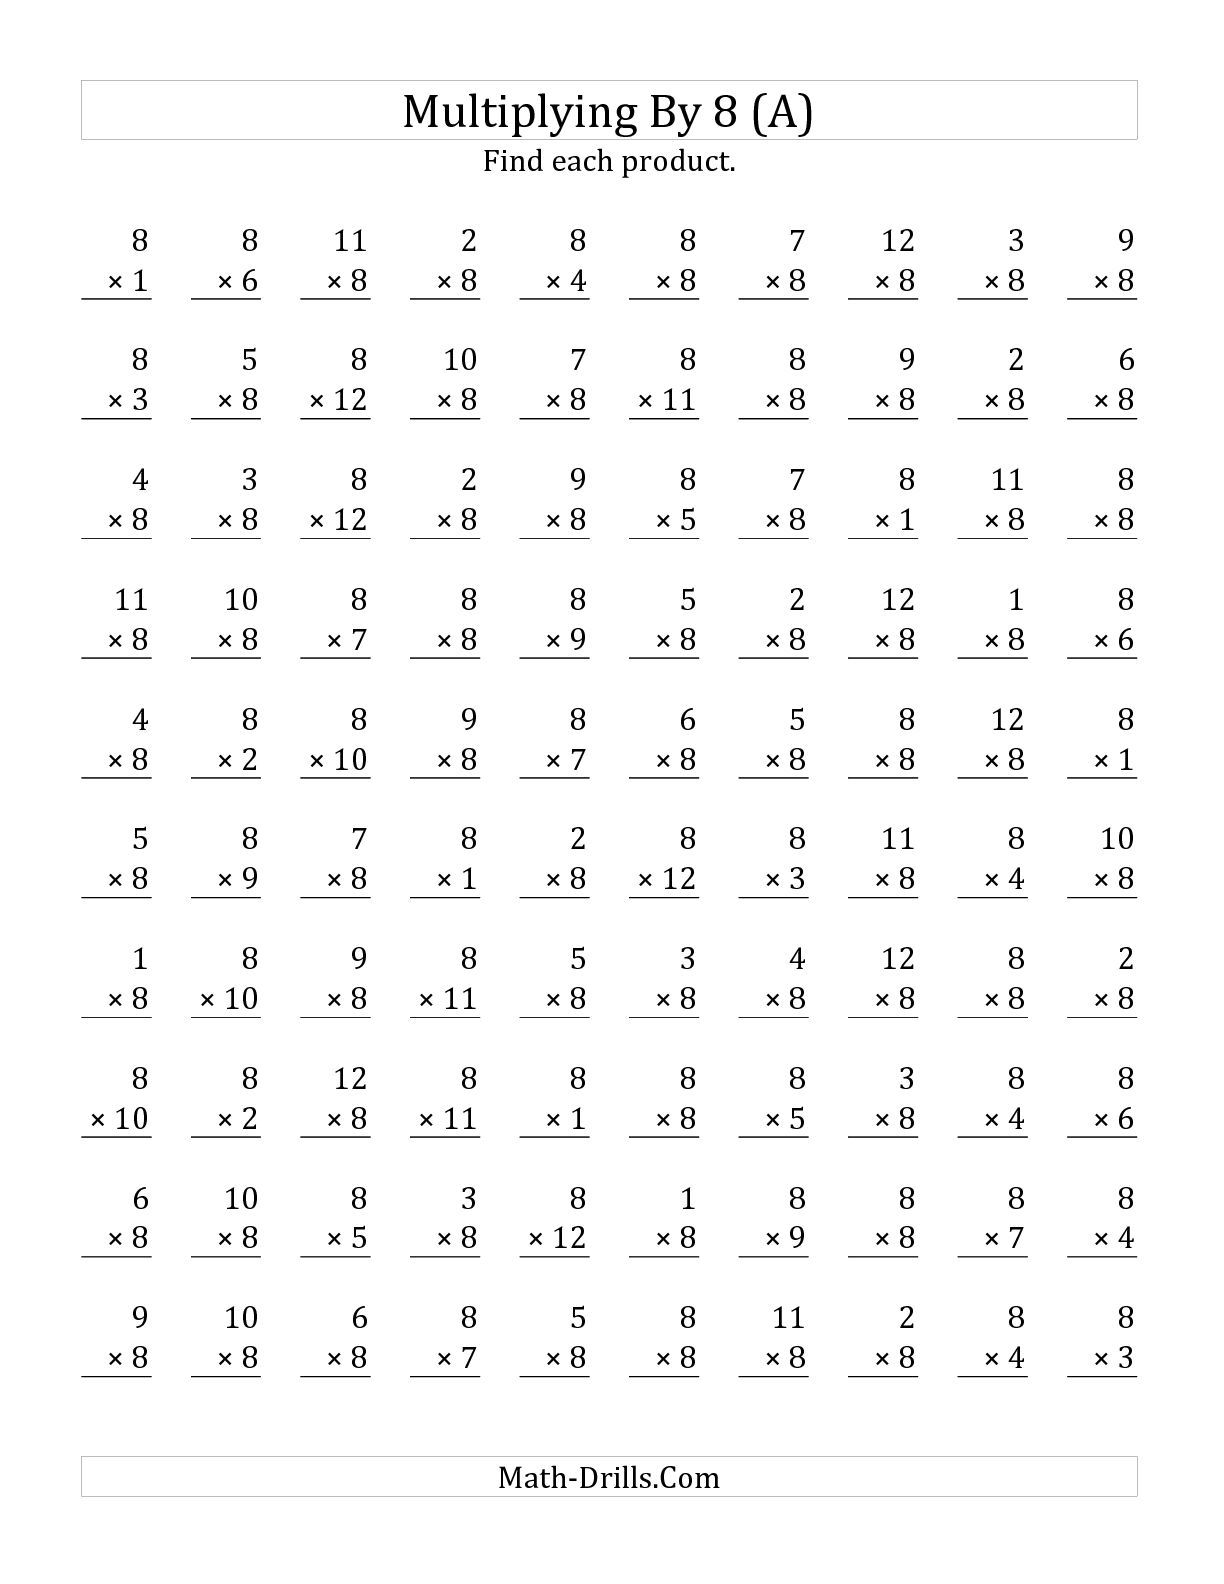 Worksheets Math Multiplication Worksheets the multiplying 1 to 12 by 8 a math worksheet from multiplication page at drills com